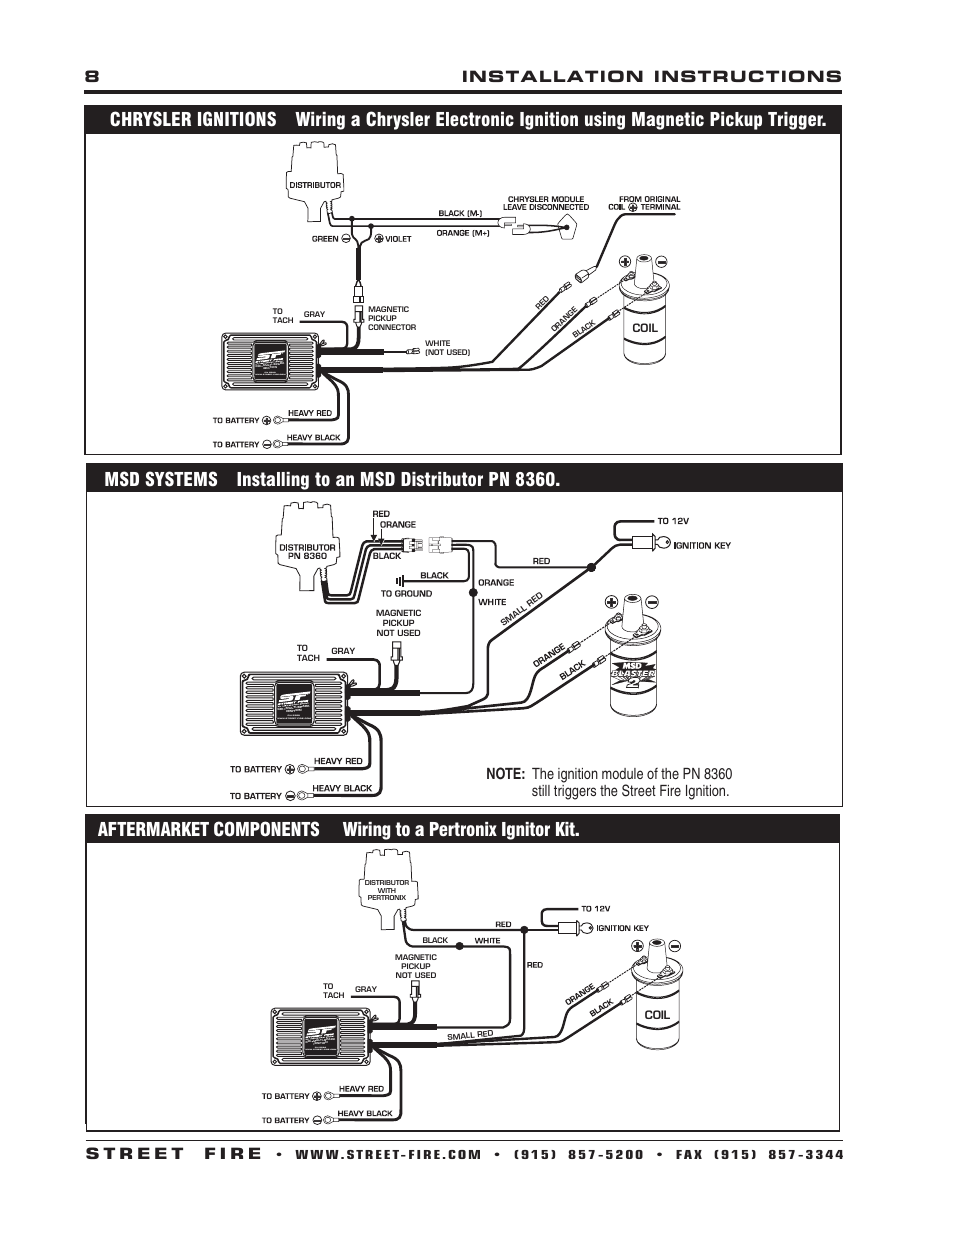 Msd Distributor 8360 Wiring Diagram Books Of Ready To Run 5520 Street Fire Ignition Control Installation User